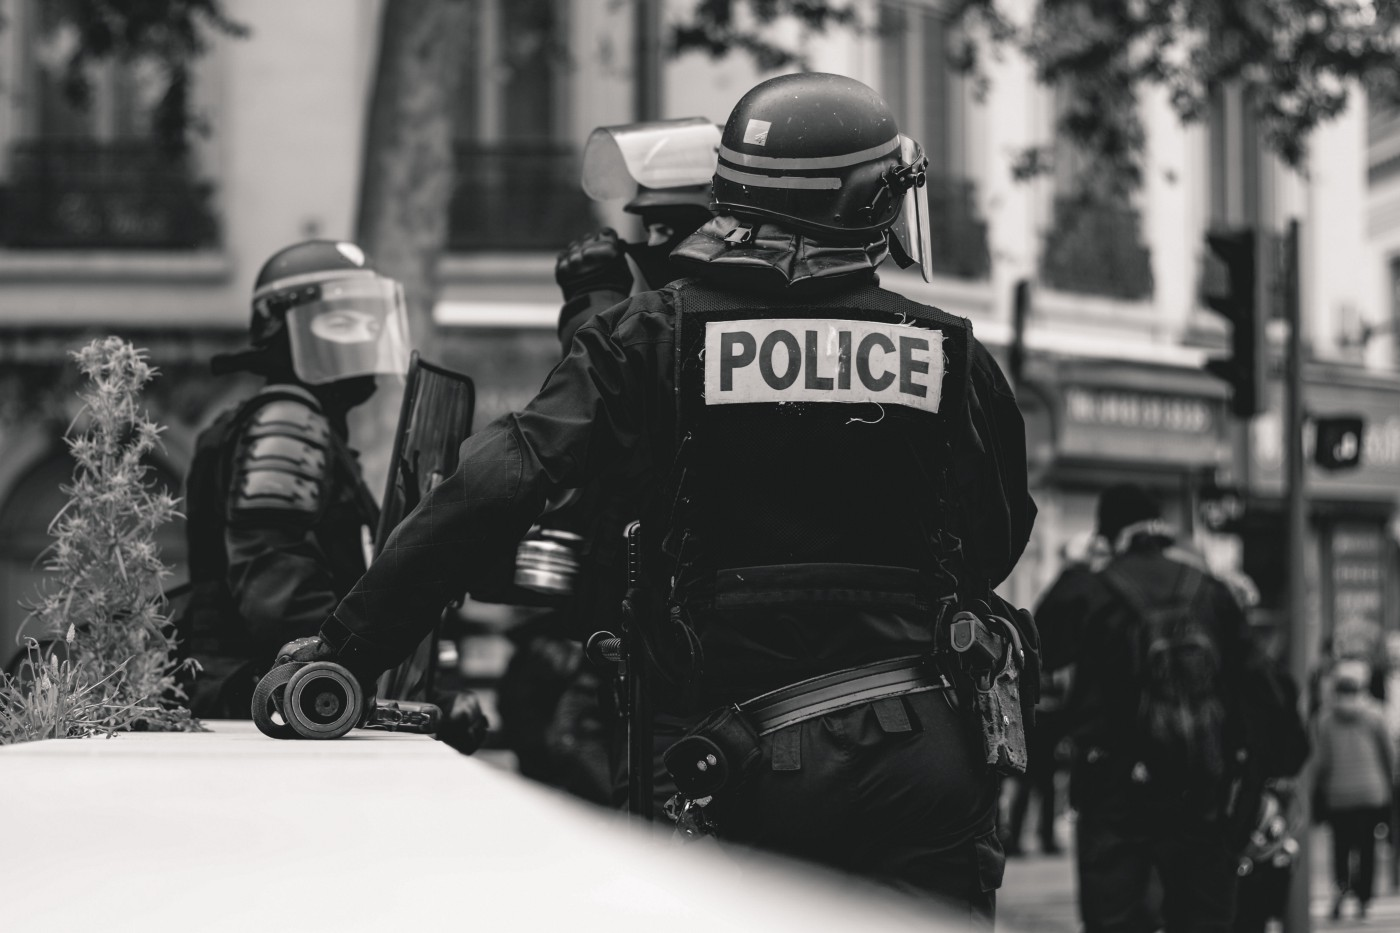 police, restraining a man, forceful, cops and robbers